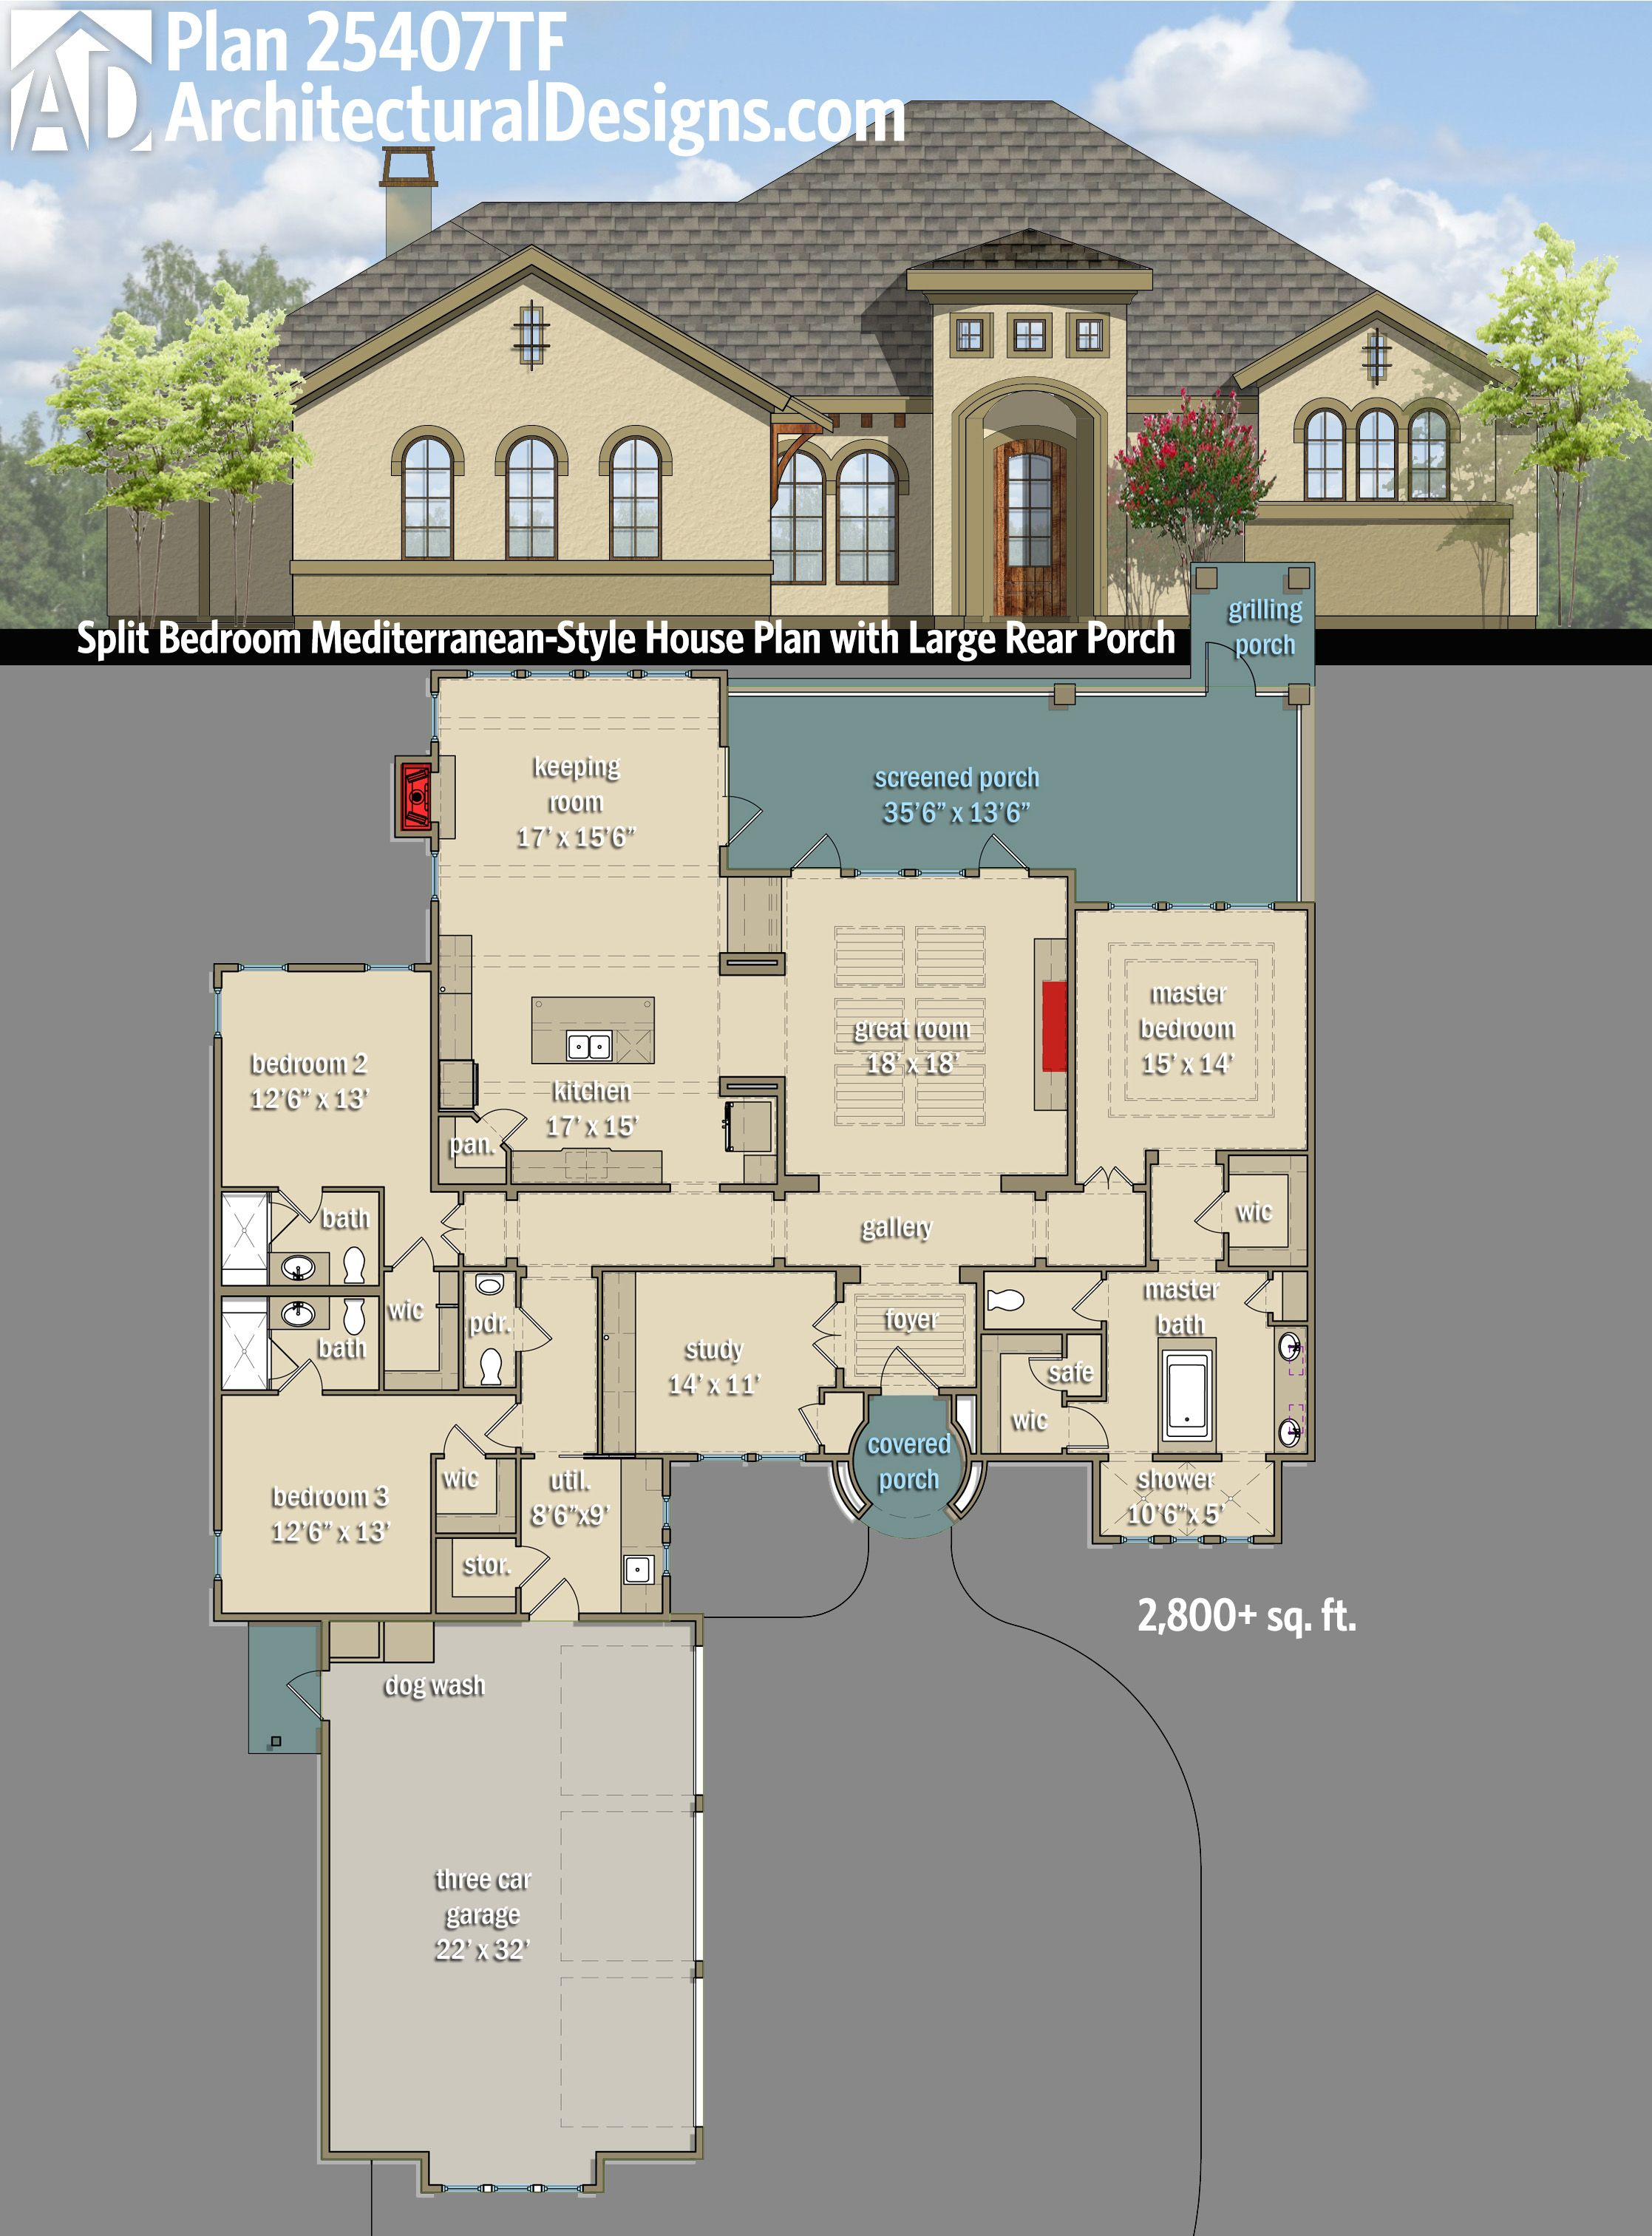 Get over 2800 square feet of living